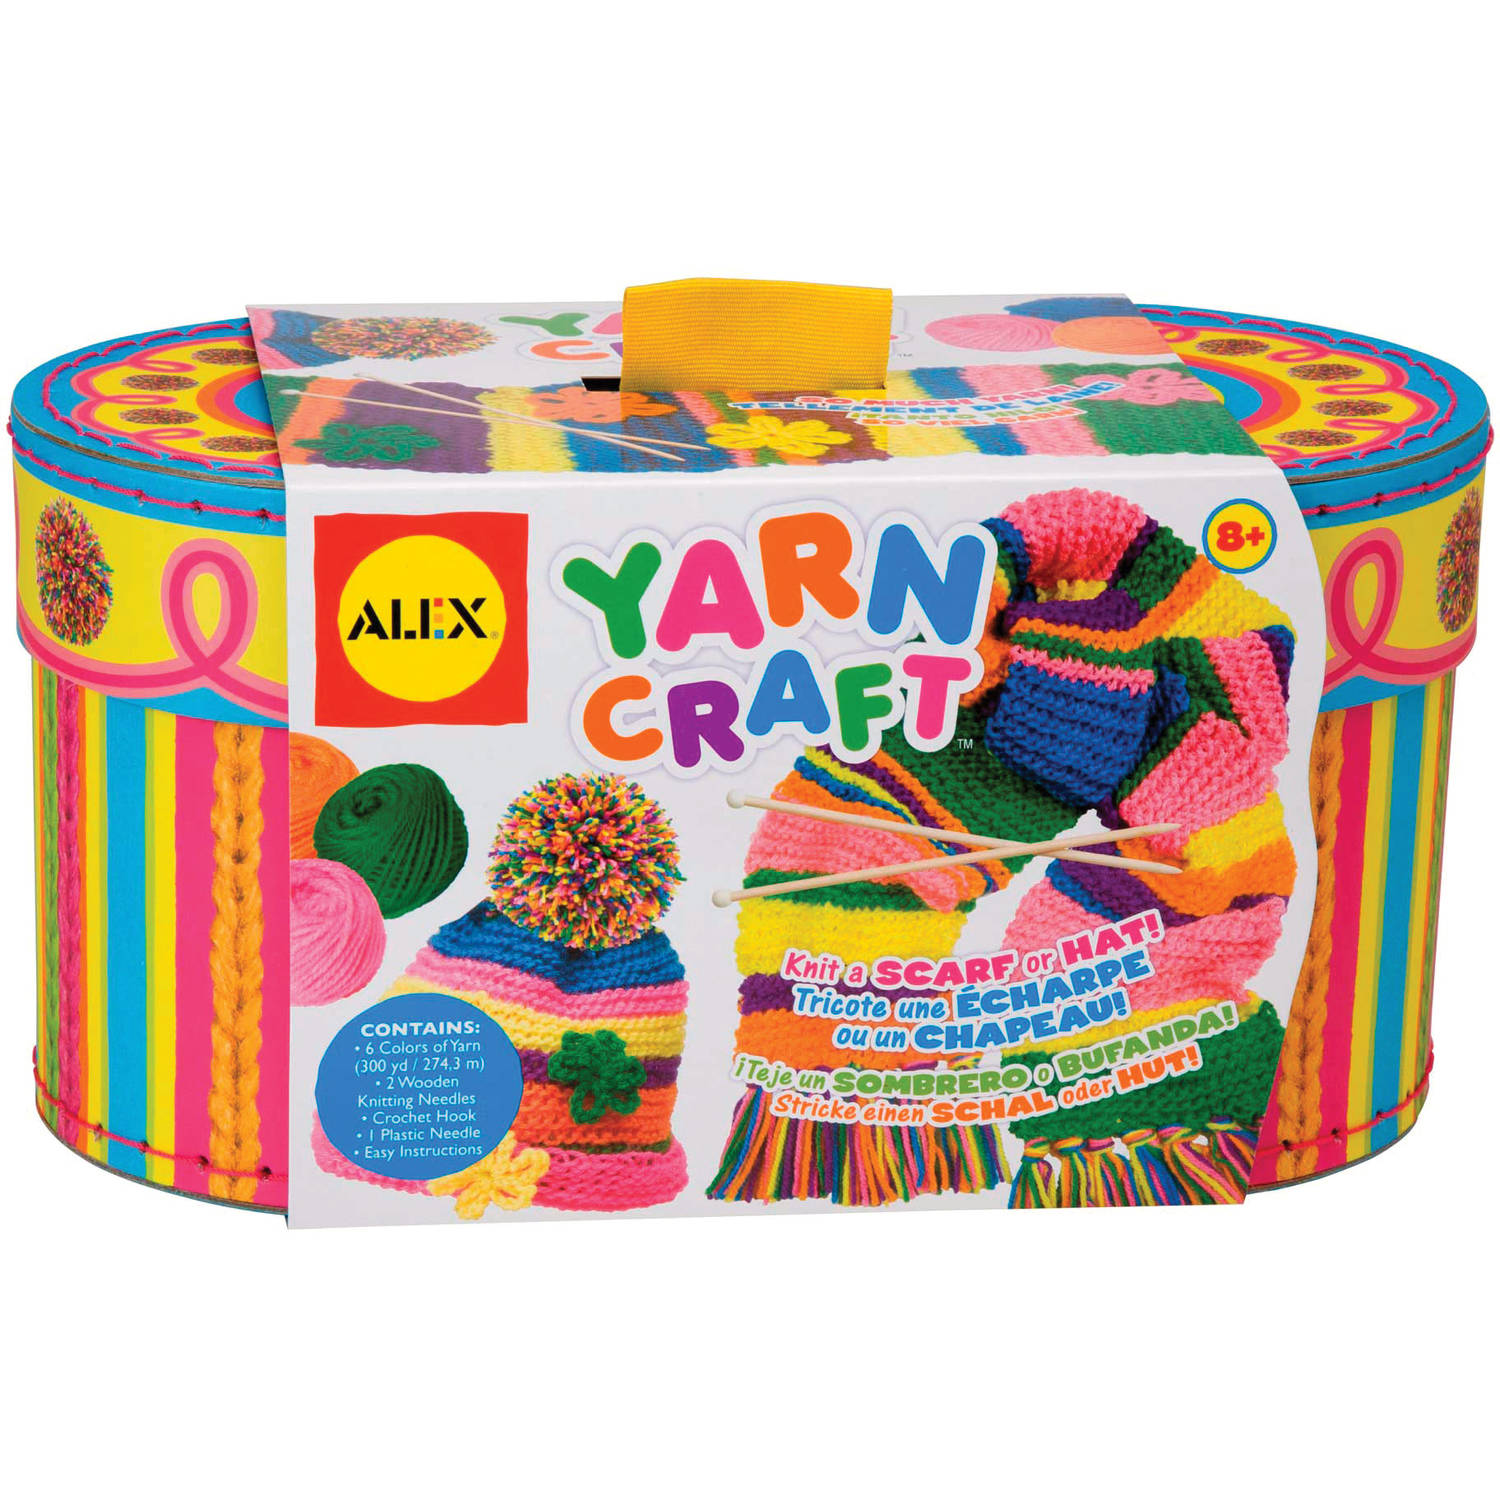 ALEX Toys Yarn Craft